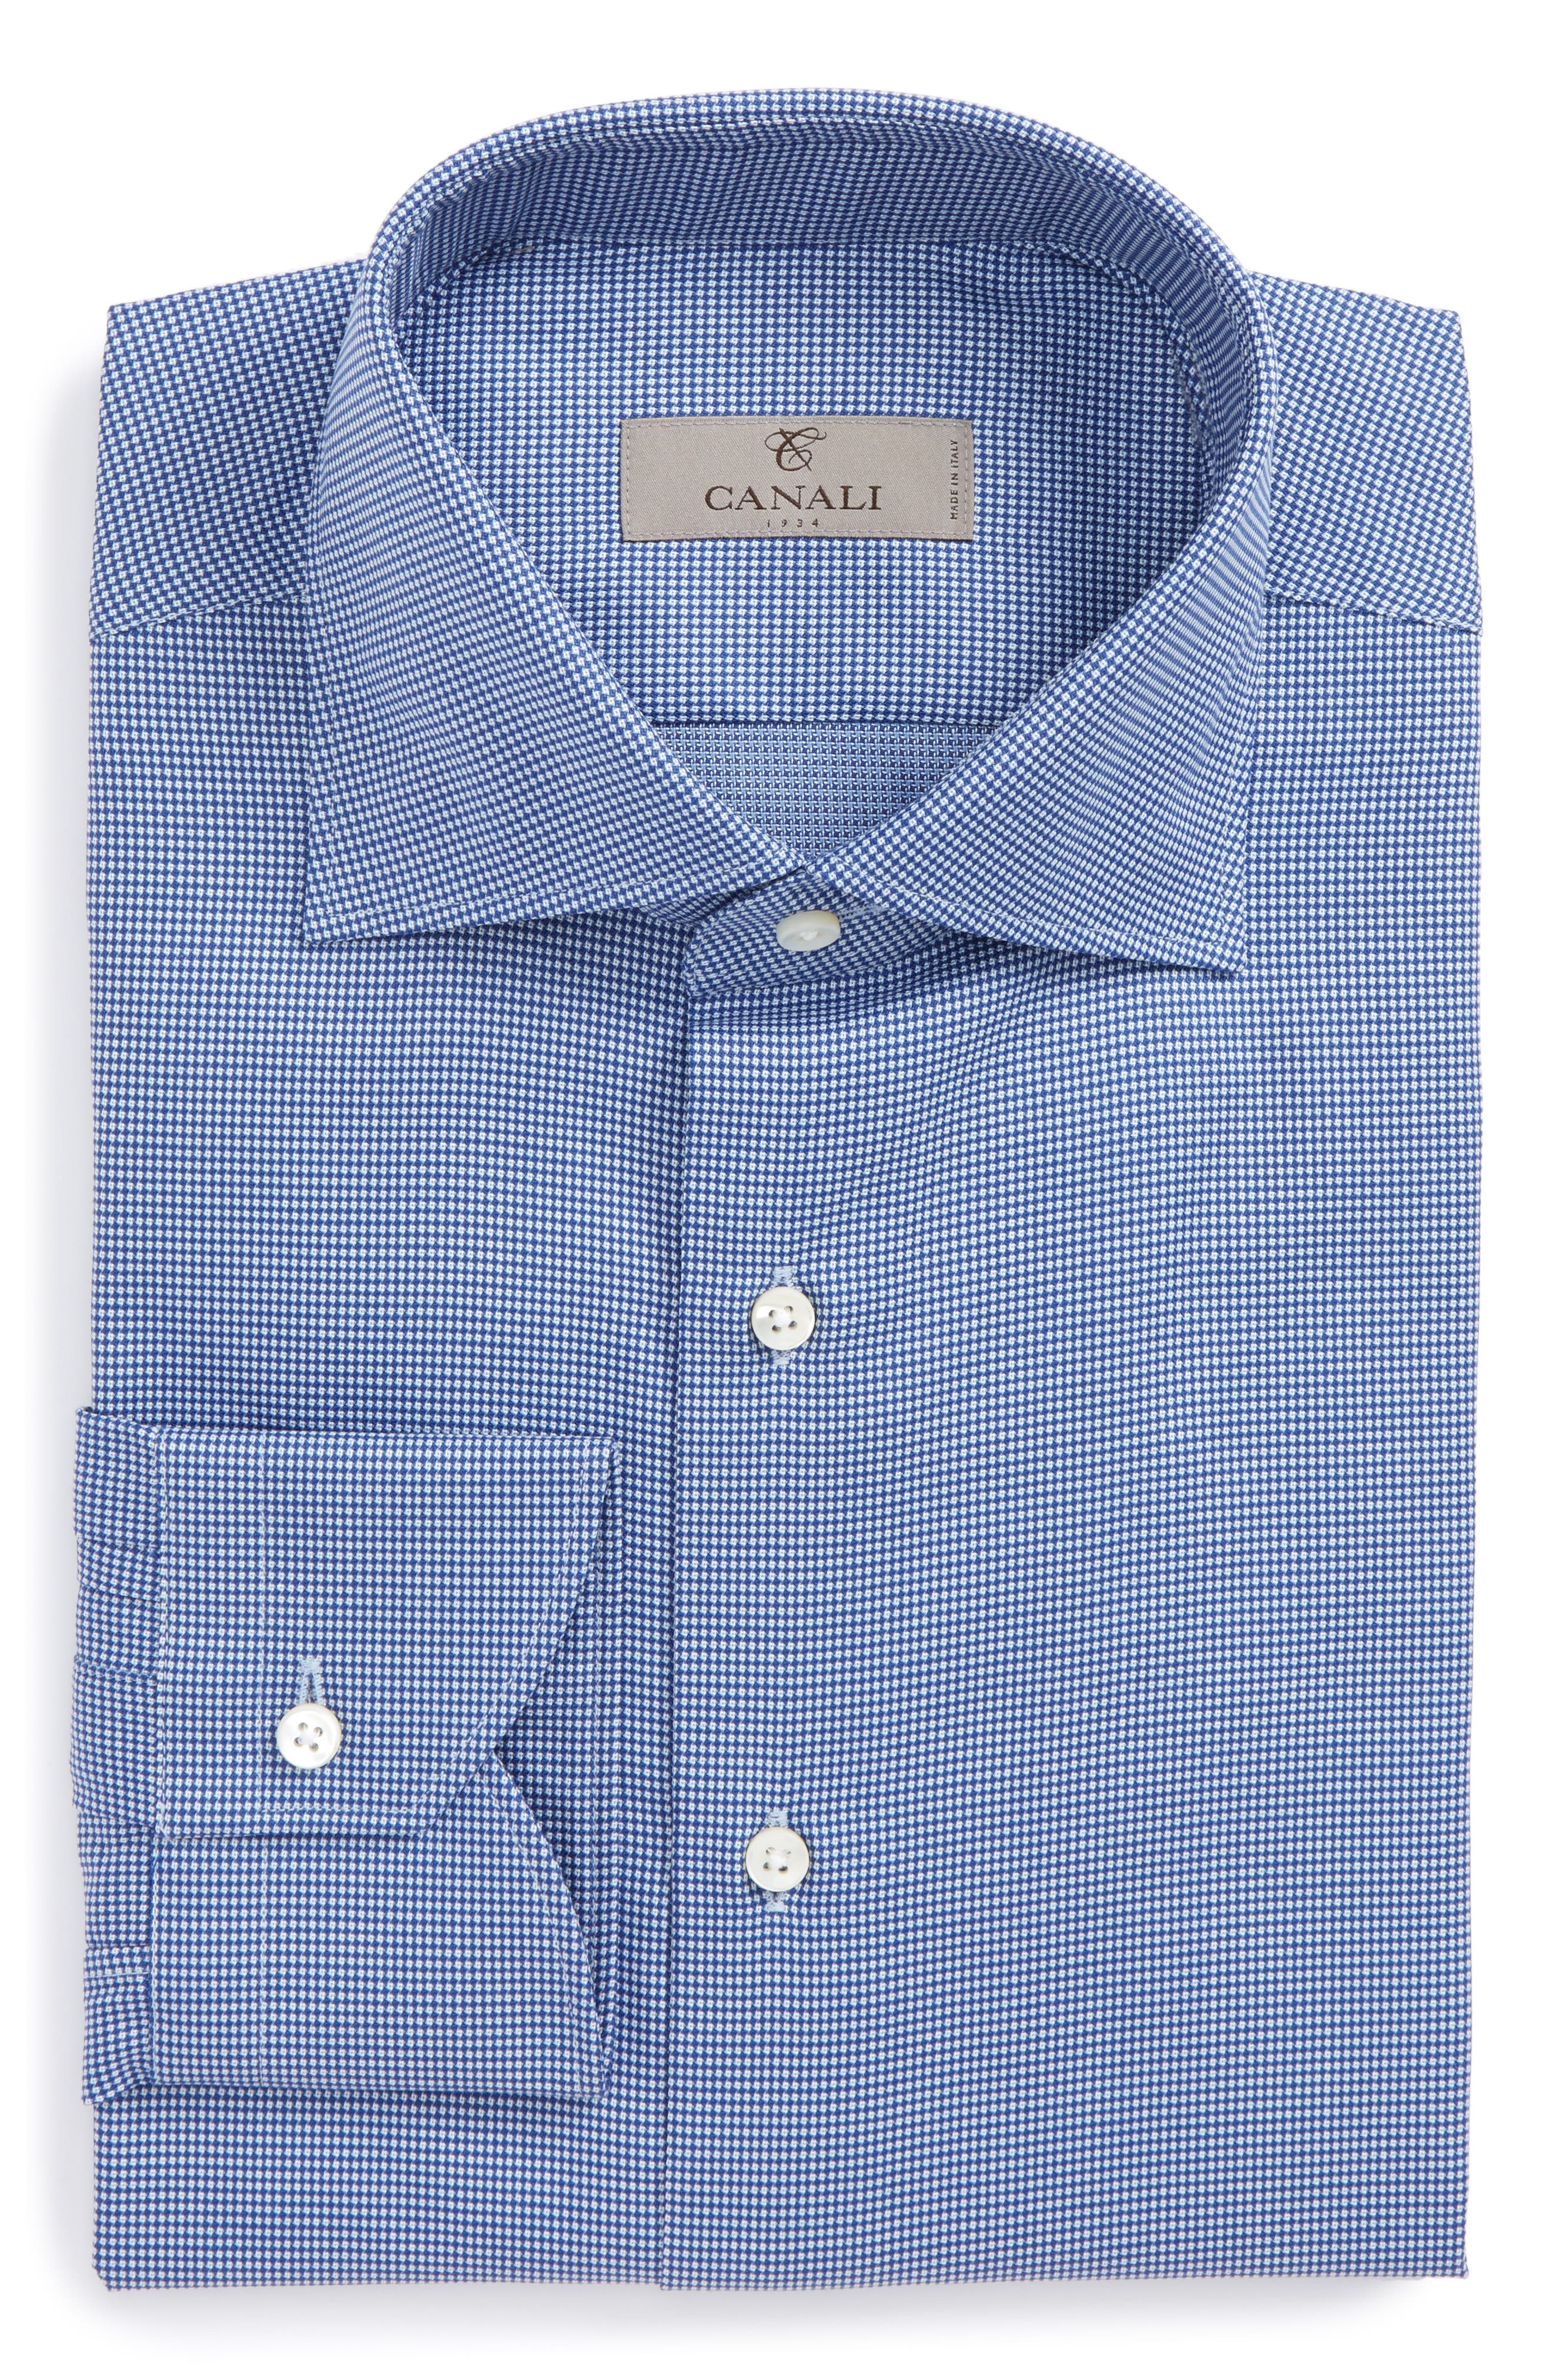 Regular Fit Solid Dress Shirt,                         Main,                         color, 401